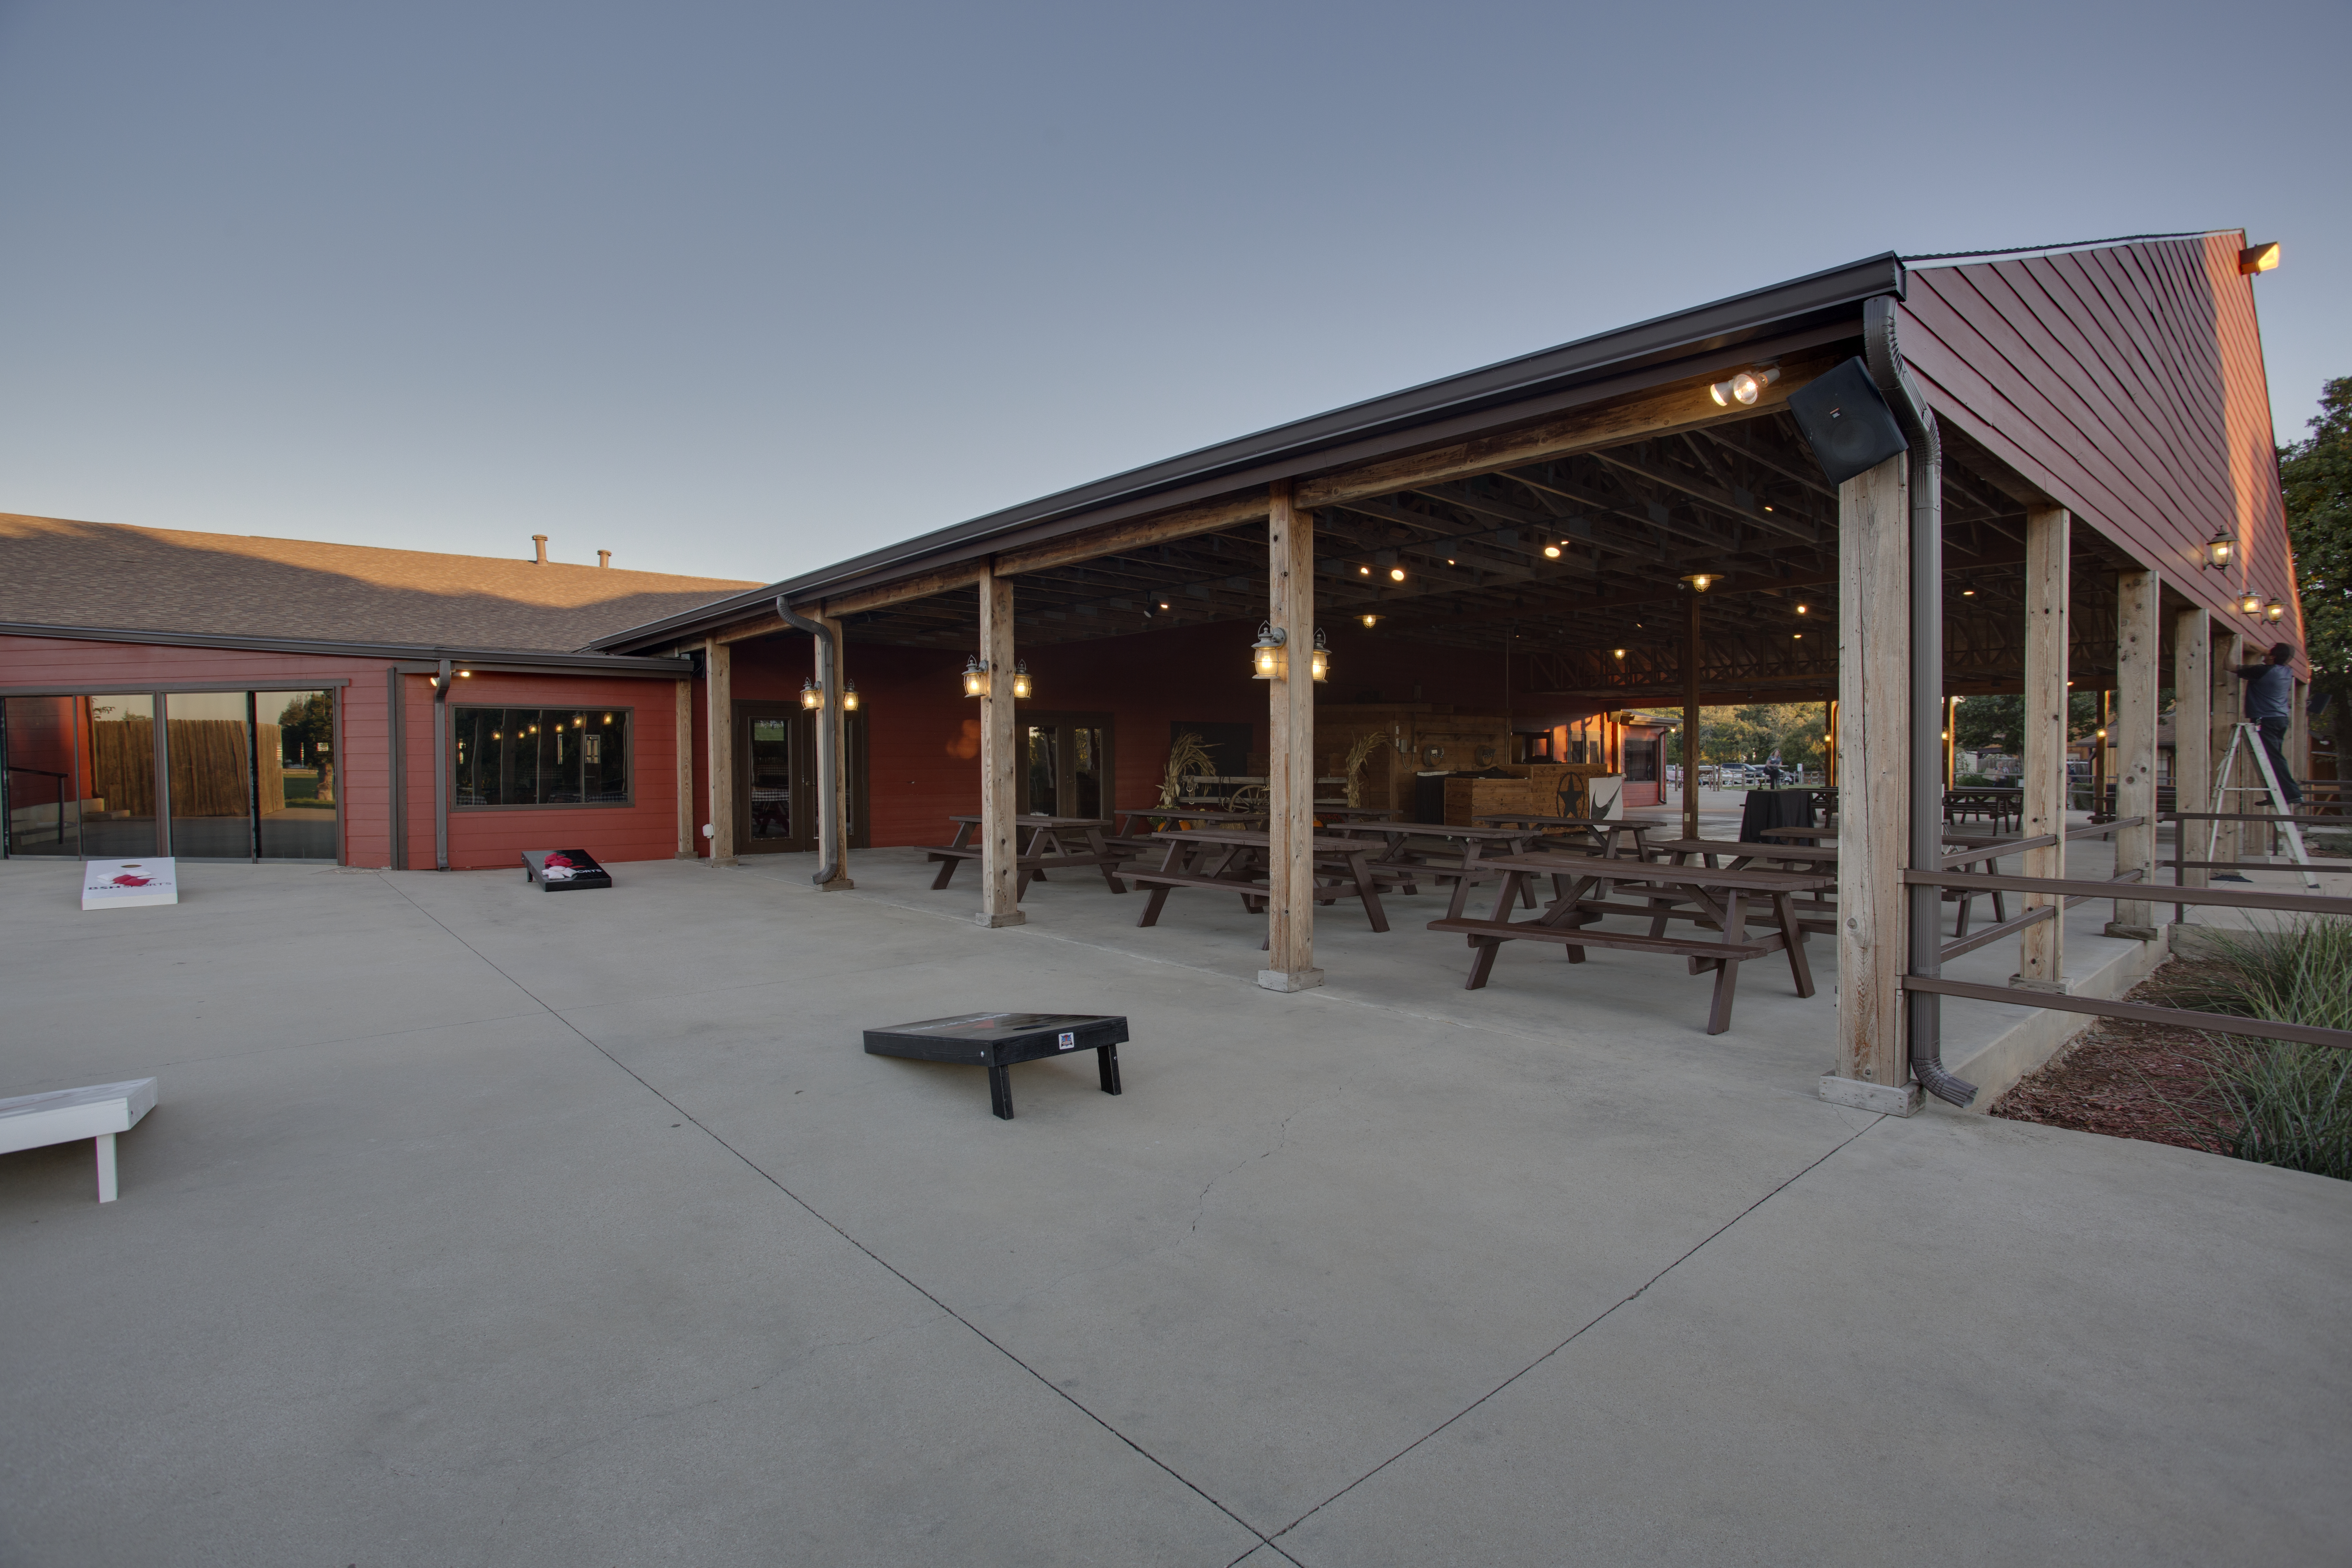 circle r ranch west patio with corn hole